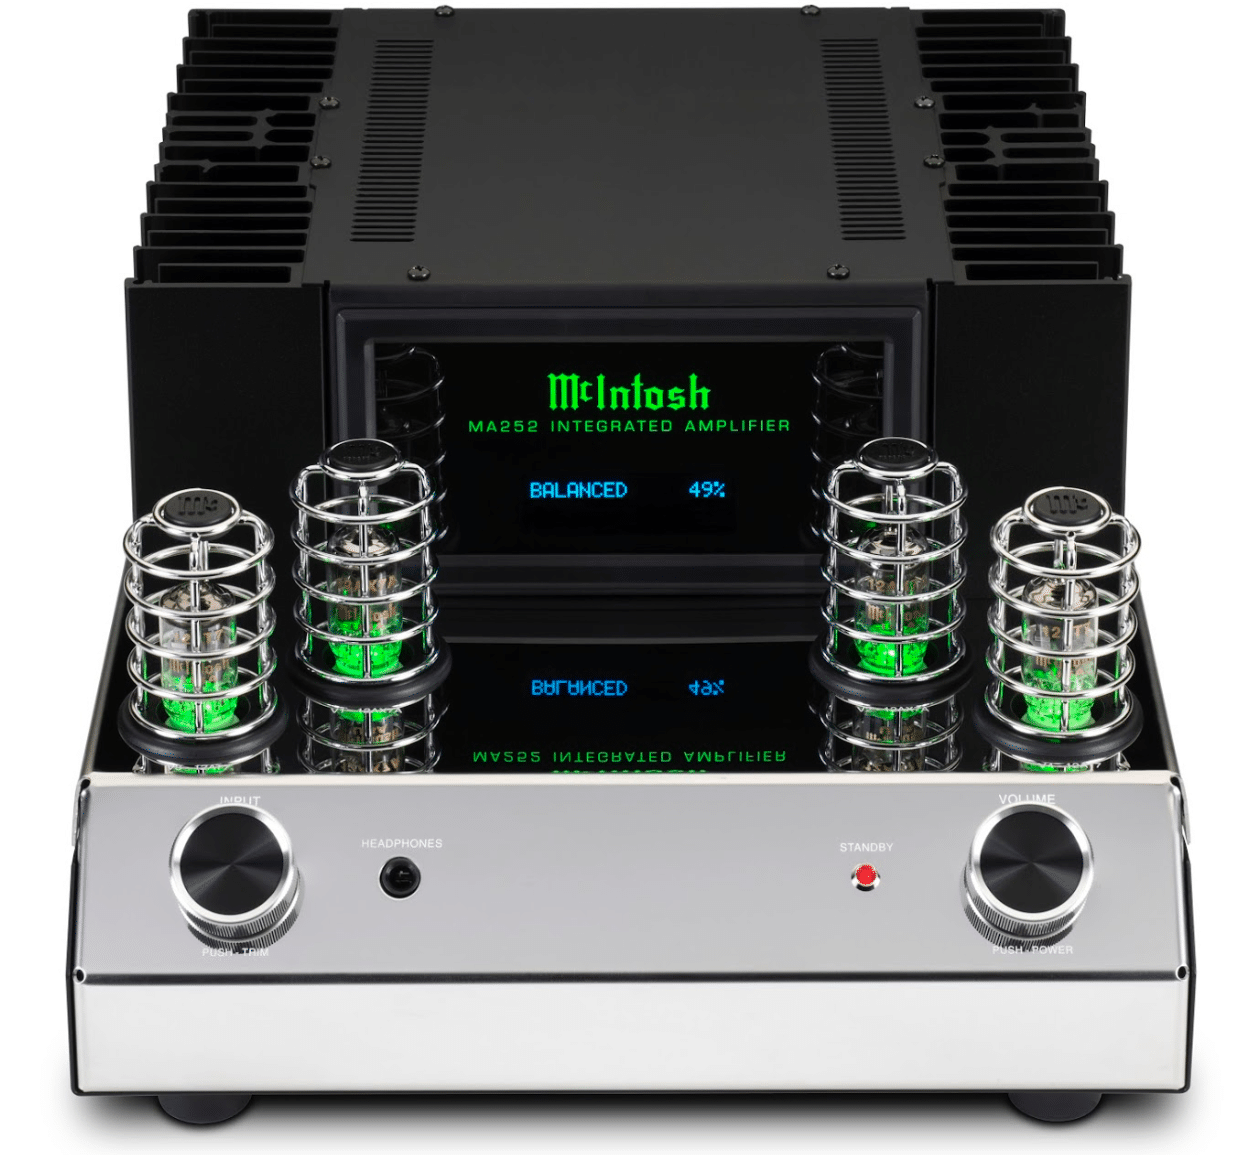 Mcintosh Ma252 Hybrid Integrated Amplifier The Audiophile Man 100 W Valve Audio Amplifiers Output Stage Is A Direct Coupled Solid State That Delivers 100w Plus Two Unbalanced One Balanced And Moving Magnet Phono